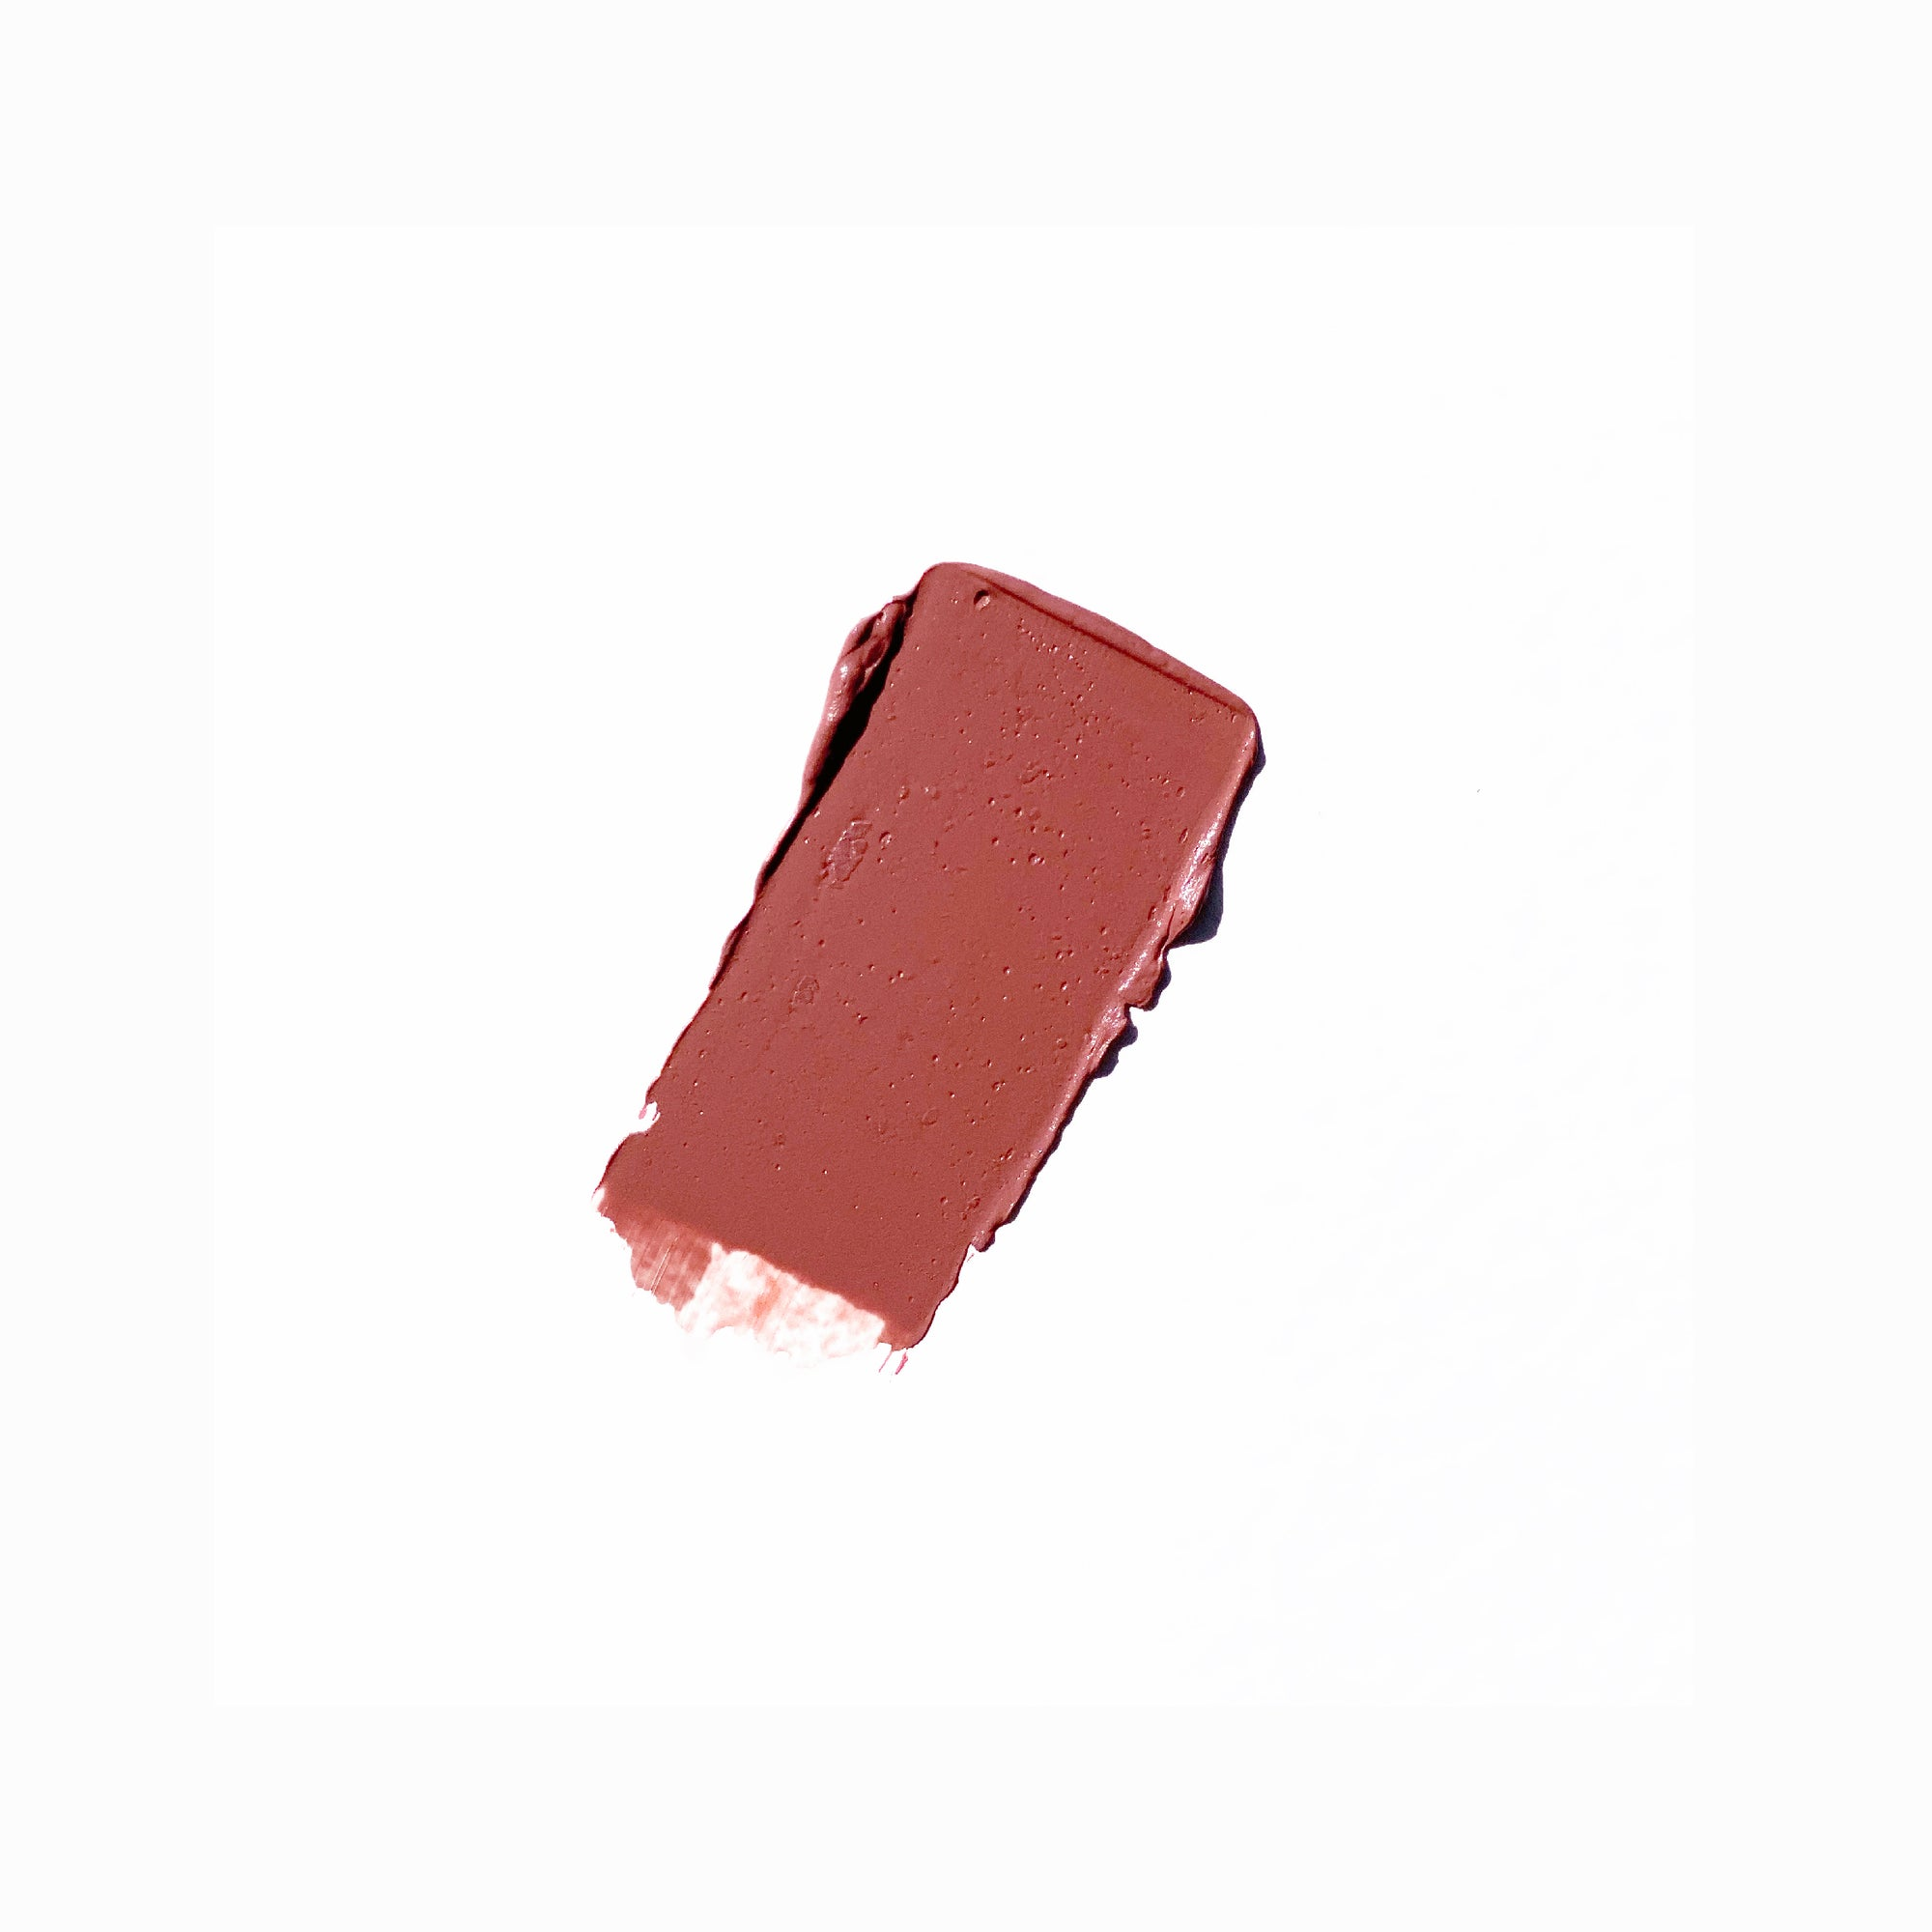 Yulip lipstick in daring nude, a deep brown beige with hint of pink undertone